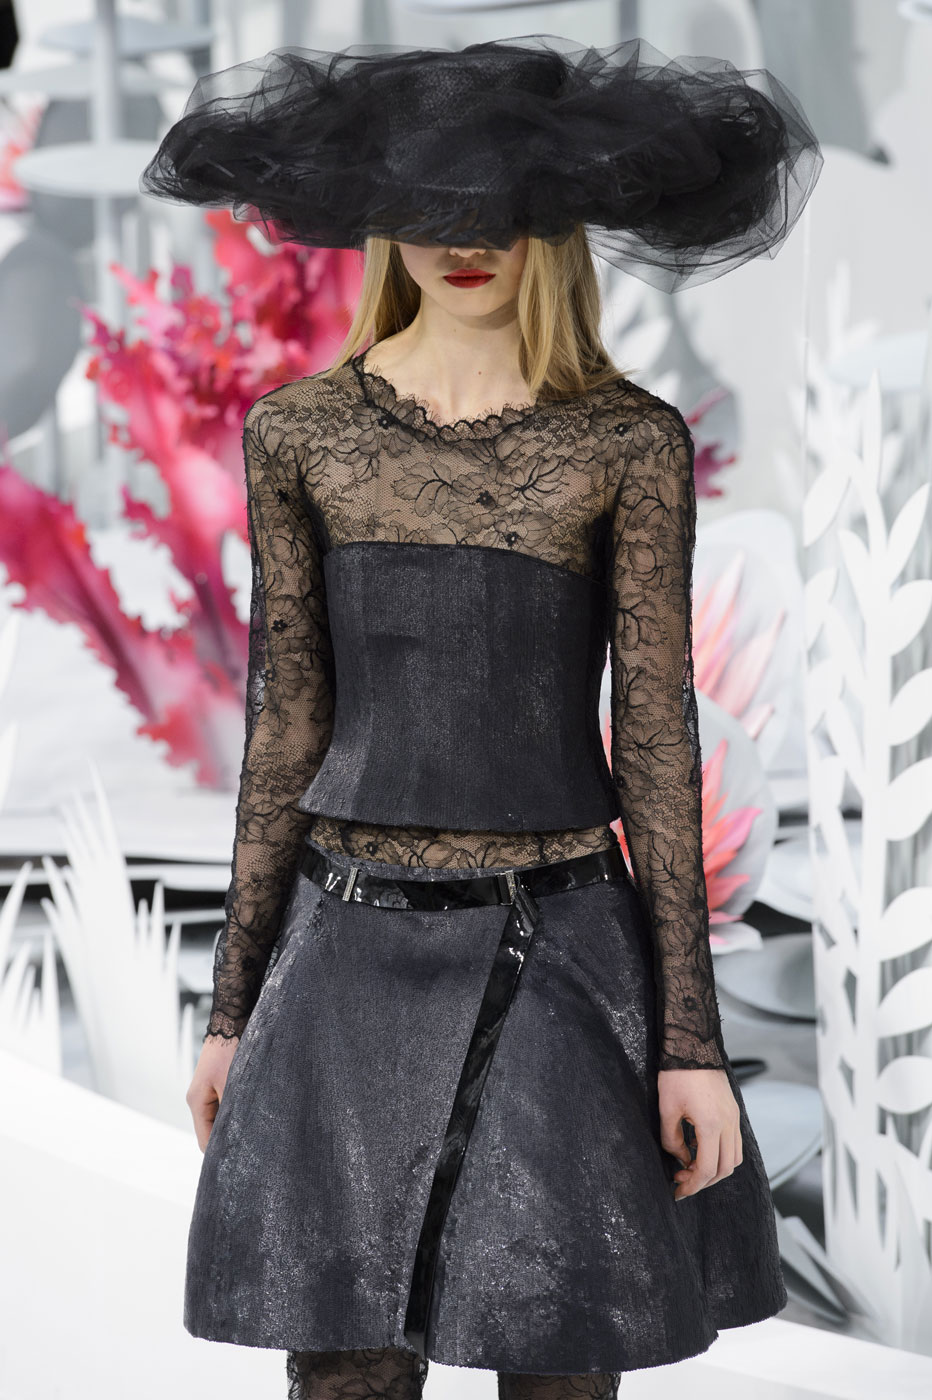 Chanel-fashion-runway-show-haute-couture-paris-spring-summer-2015-the-impression-085